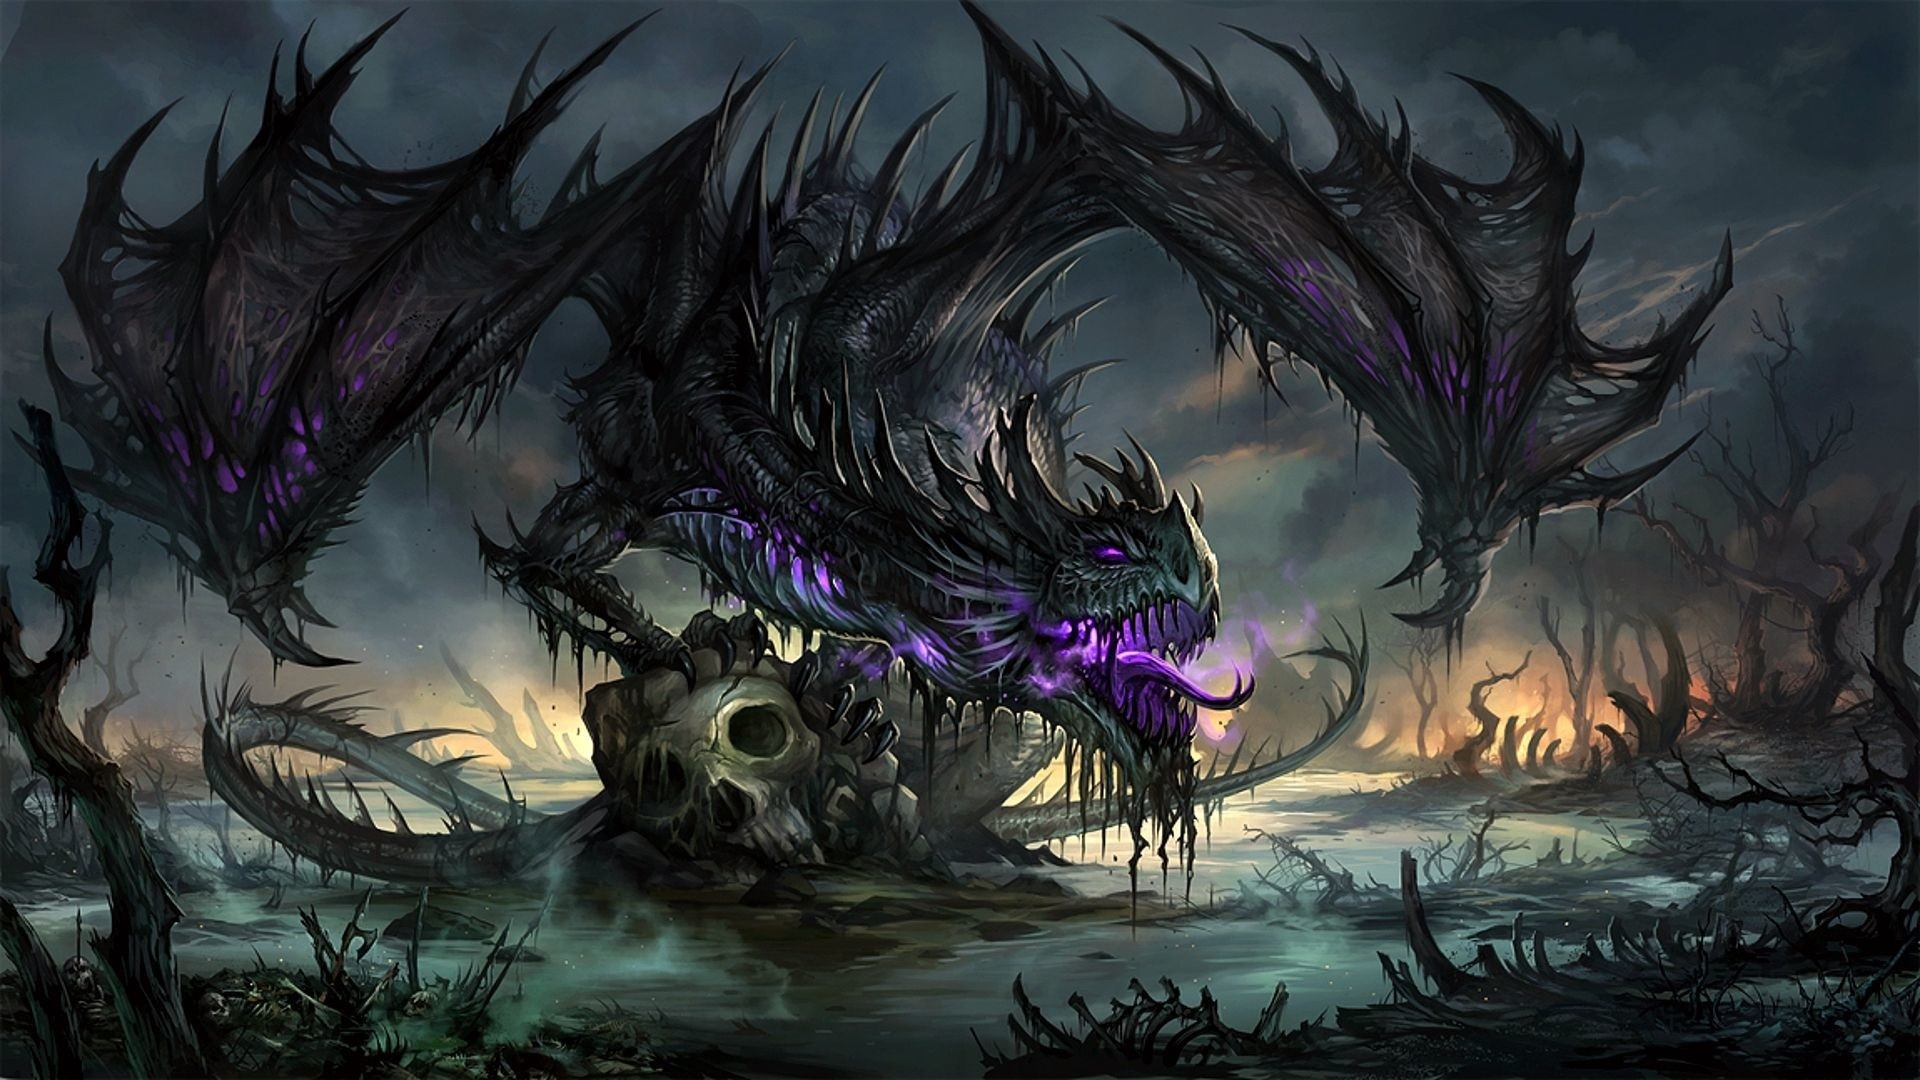 1920x1080 Purple-dragon-fantasy-hd-wallpaper--44644.jpg